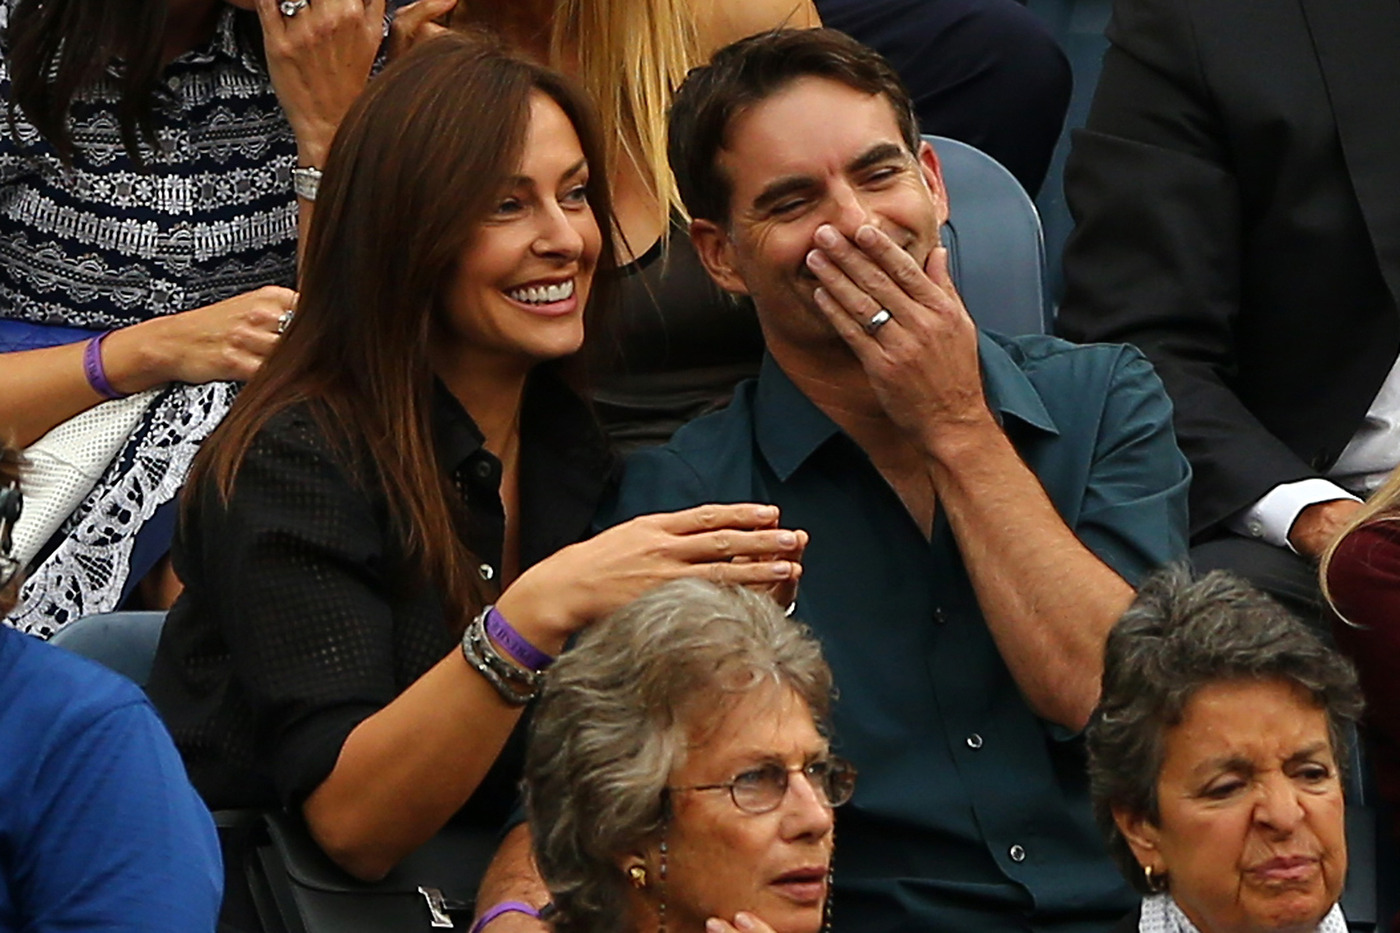 stars of the open photo gallery video and photos 2014 us getty images nascar driver jeff gordon r and his wife ingrid vandebosch l watch david schwimmer during the 2014 us open men s final between